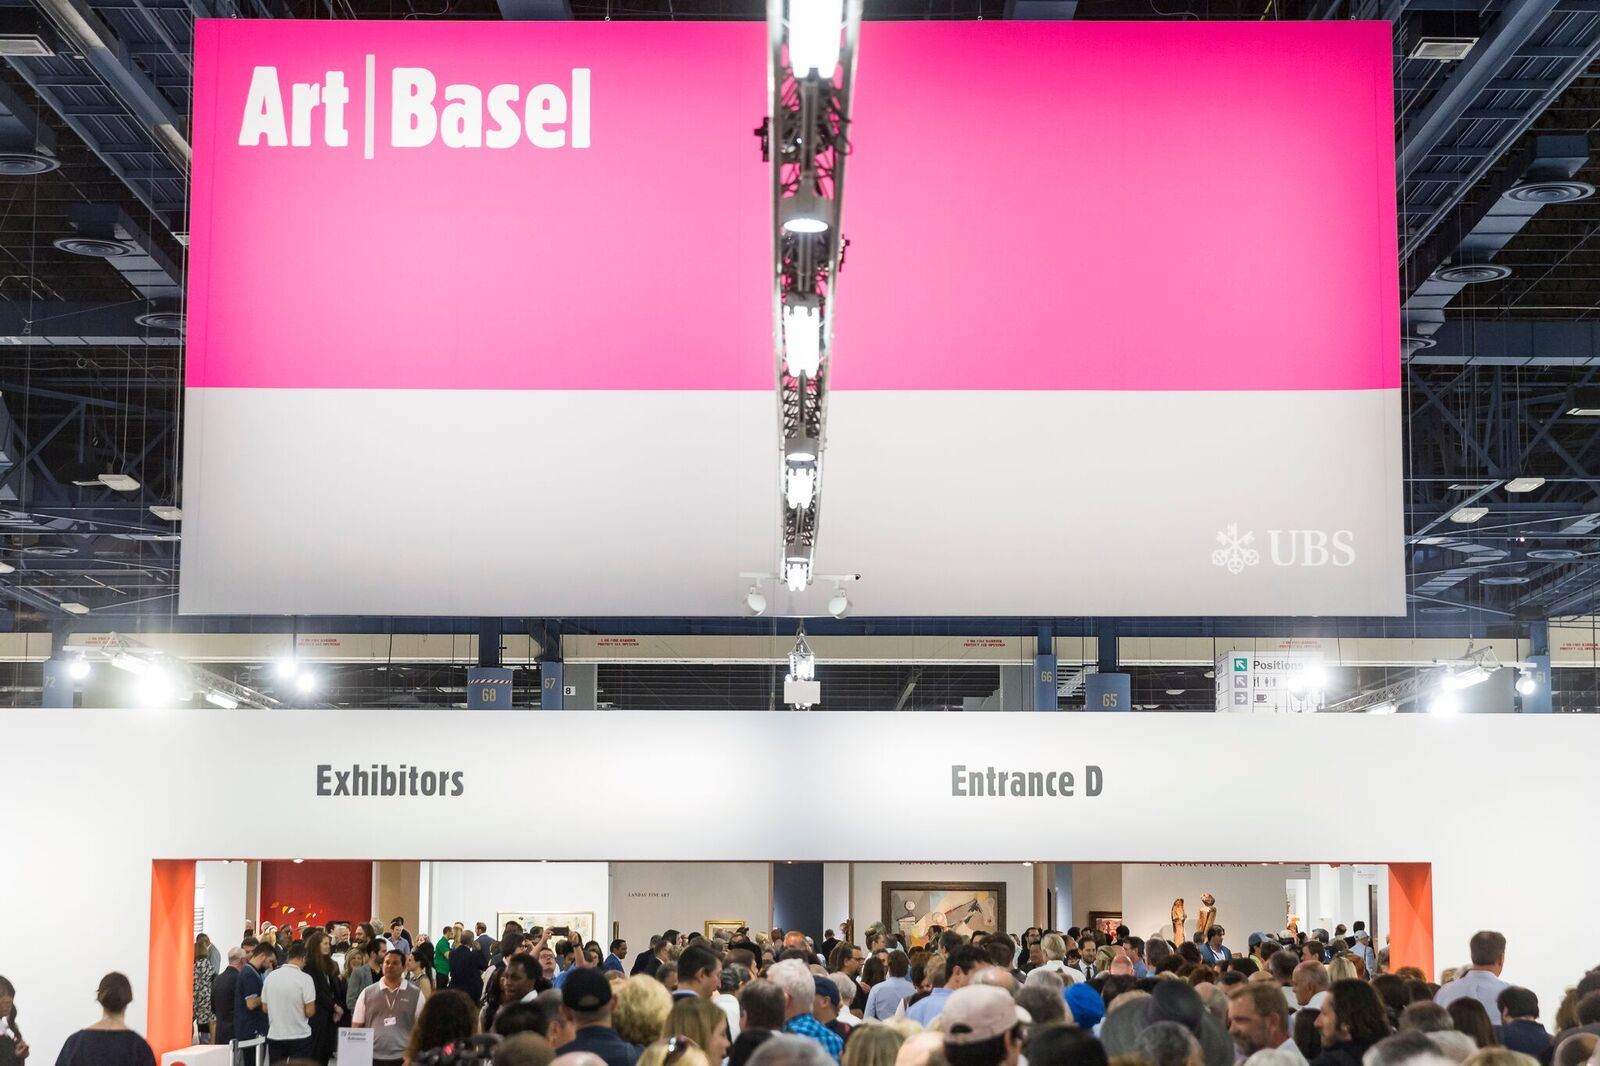 Art Basel returns to Miami Beach during Miami Arts Week 2017